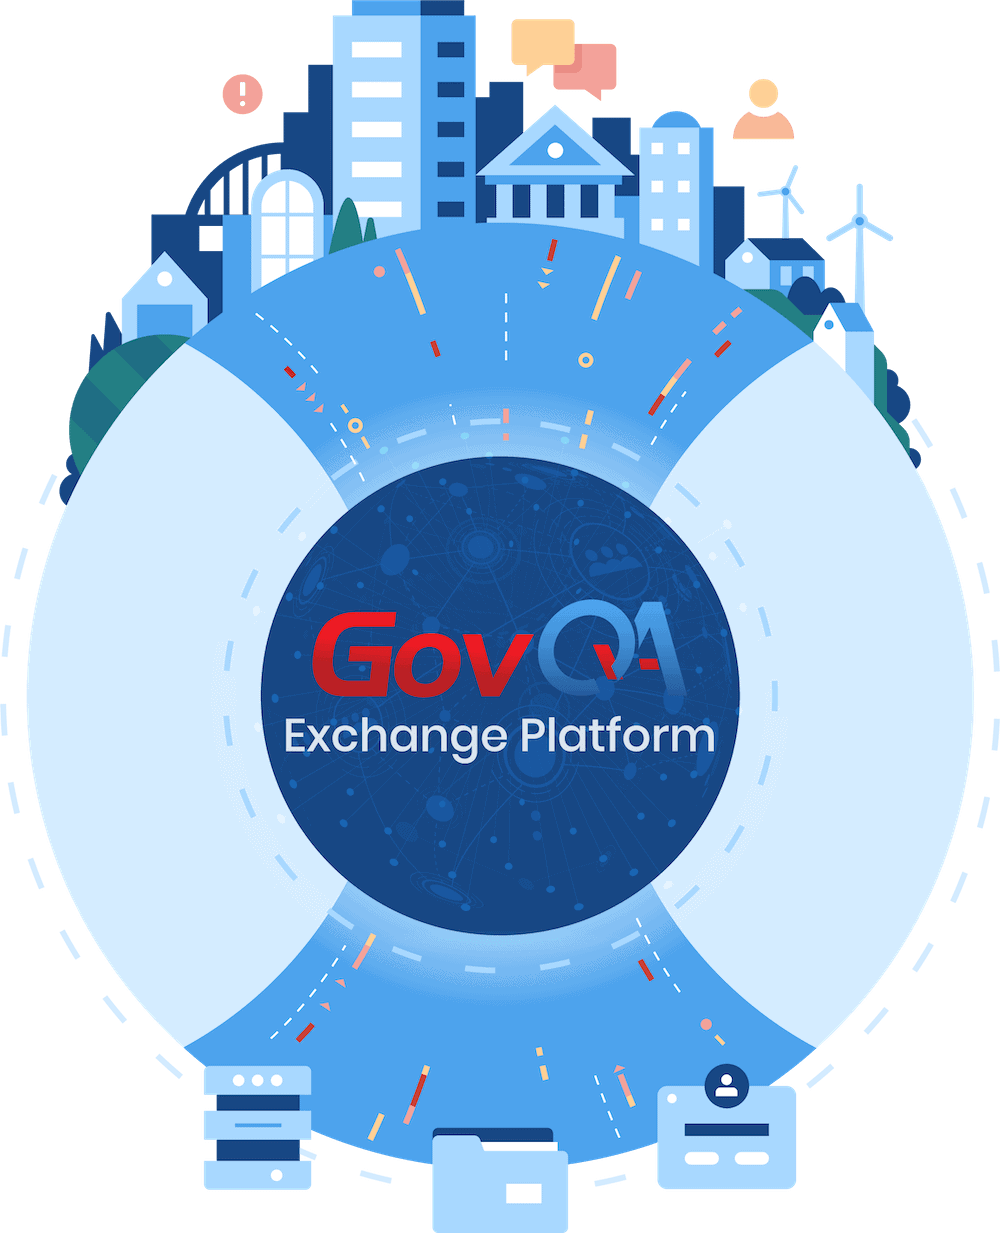 FOIA management - GovQA Exchange Platform